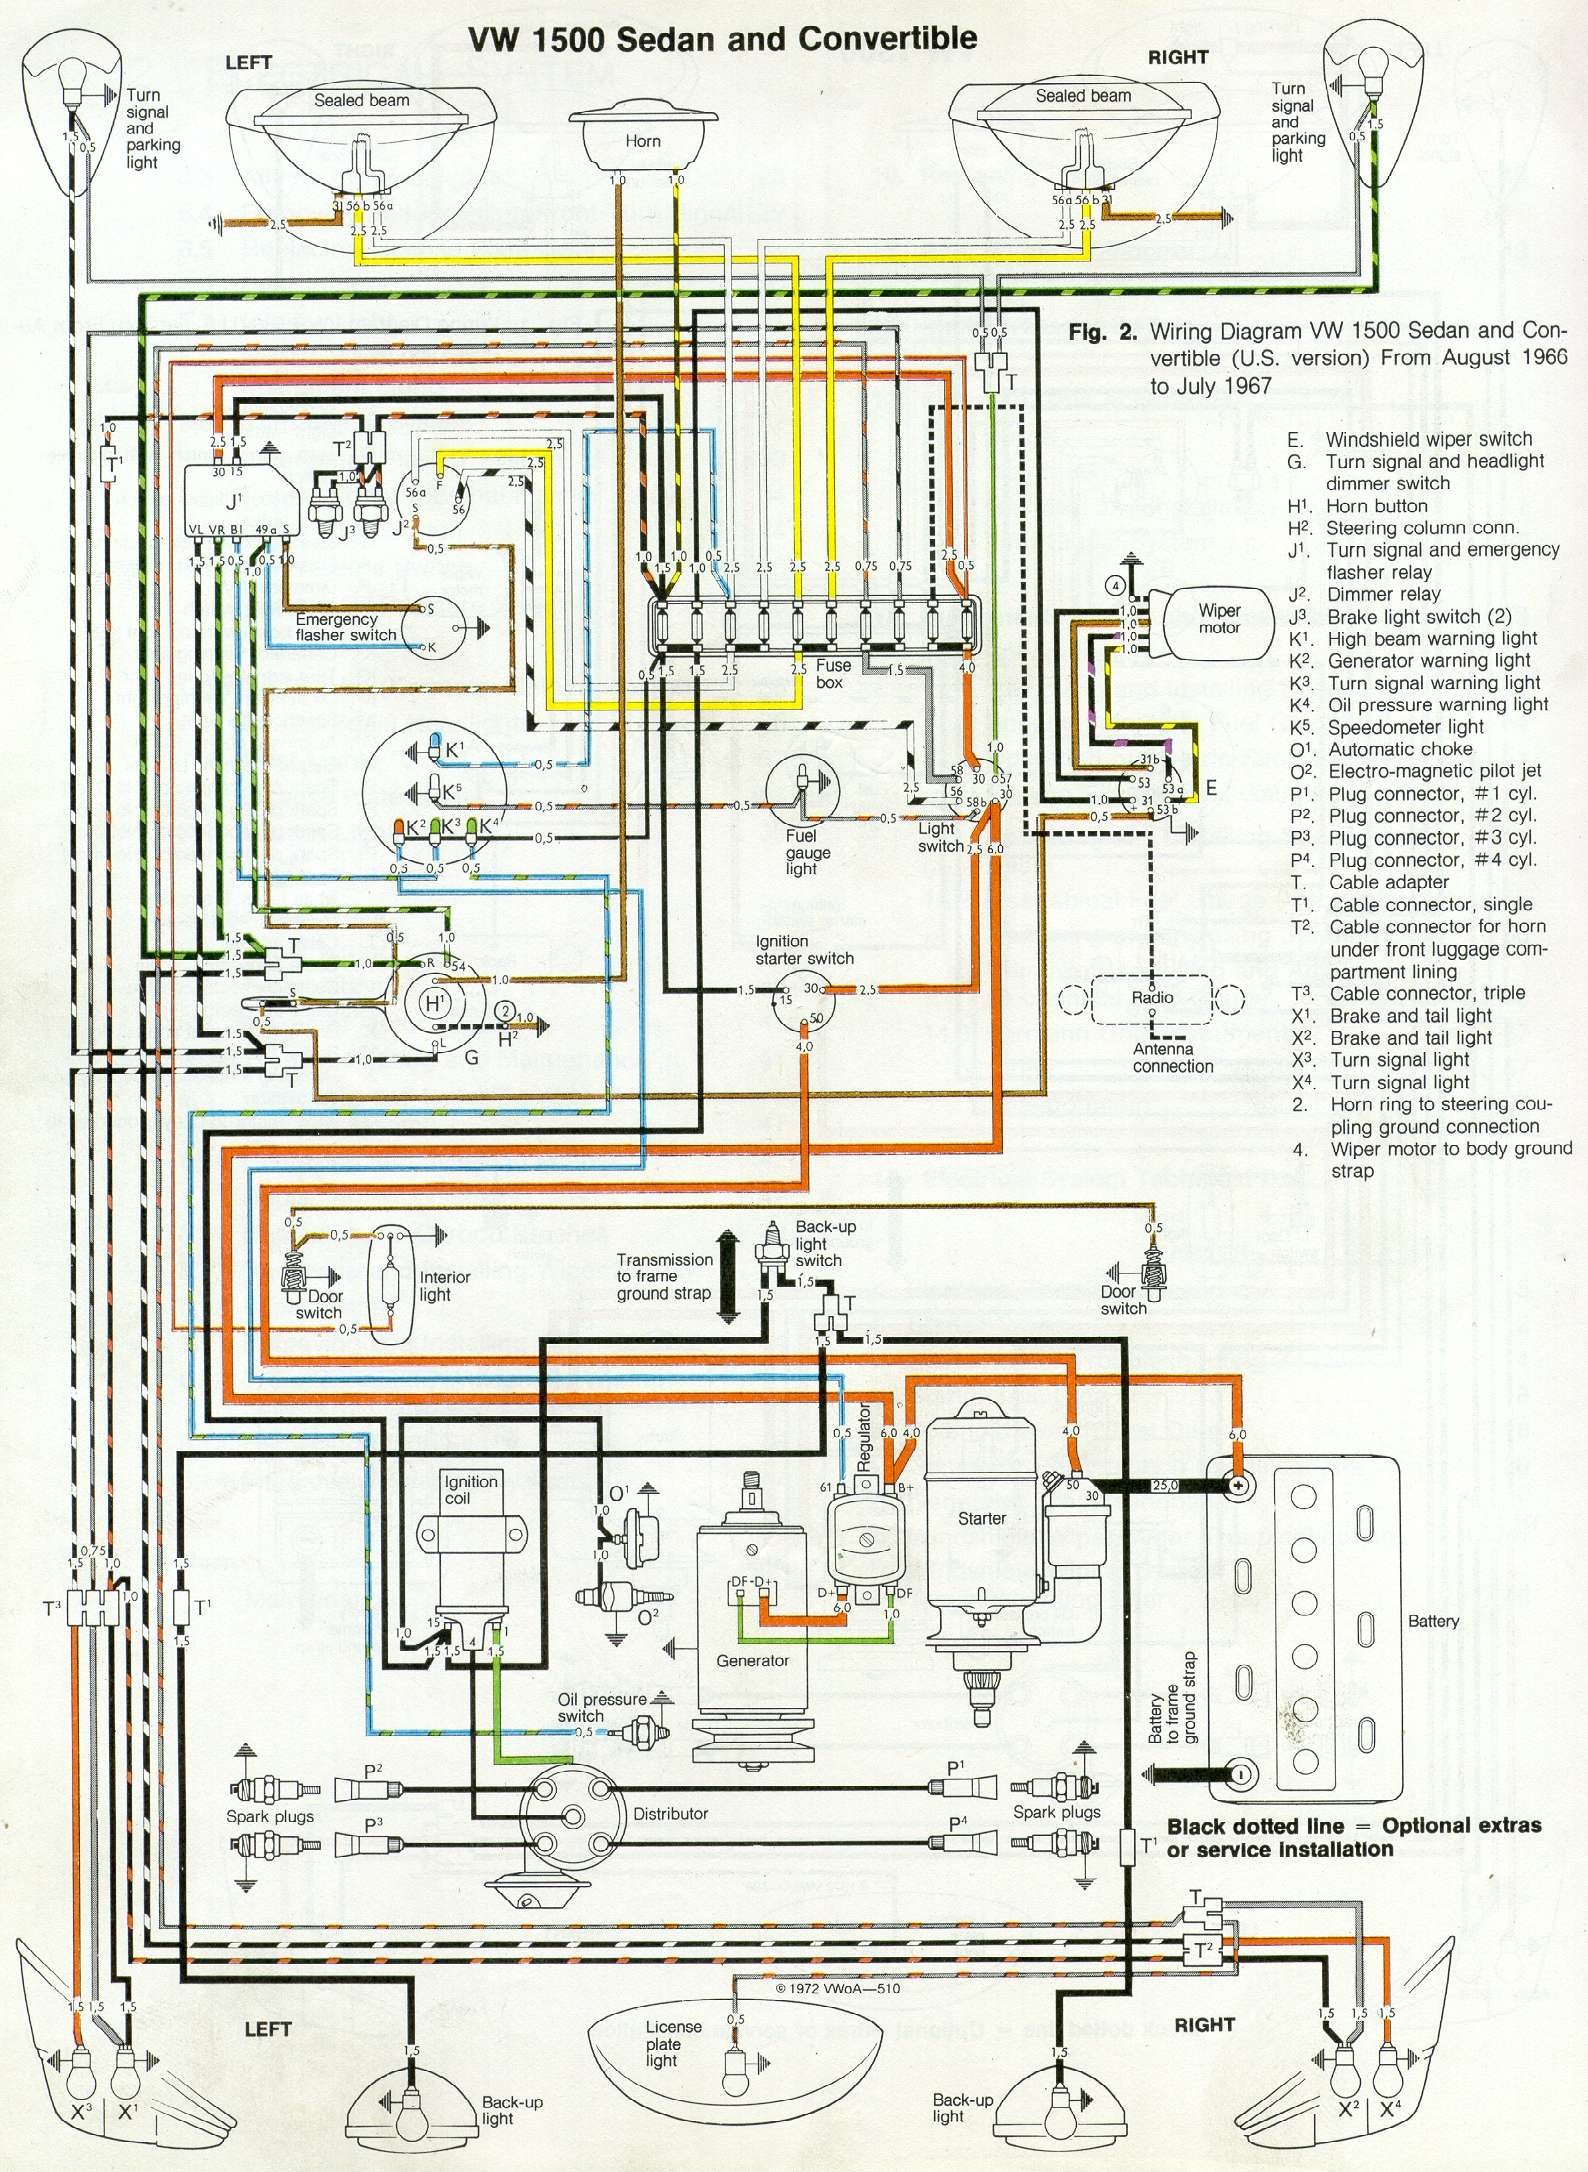 Vw Flasher Relay Wiring Diagram | Wiring Liry on